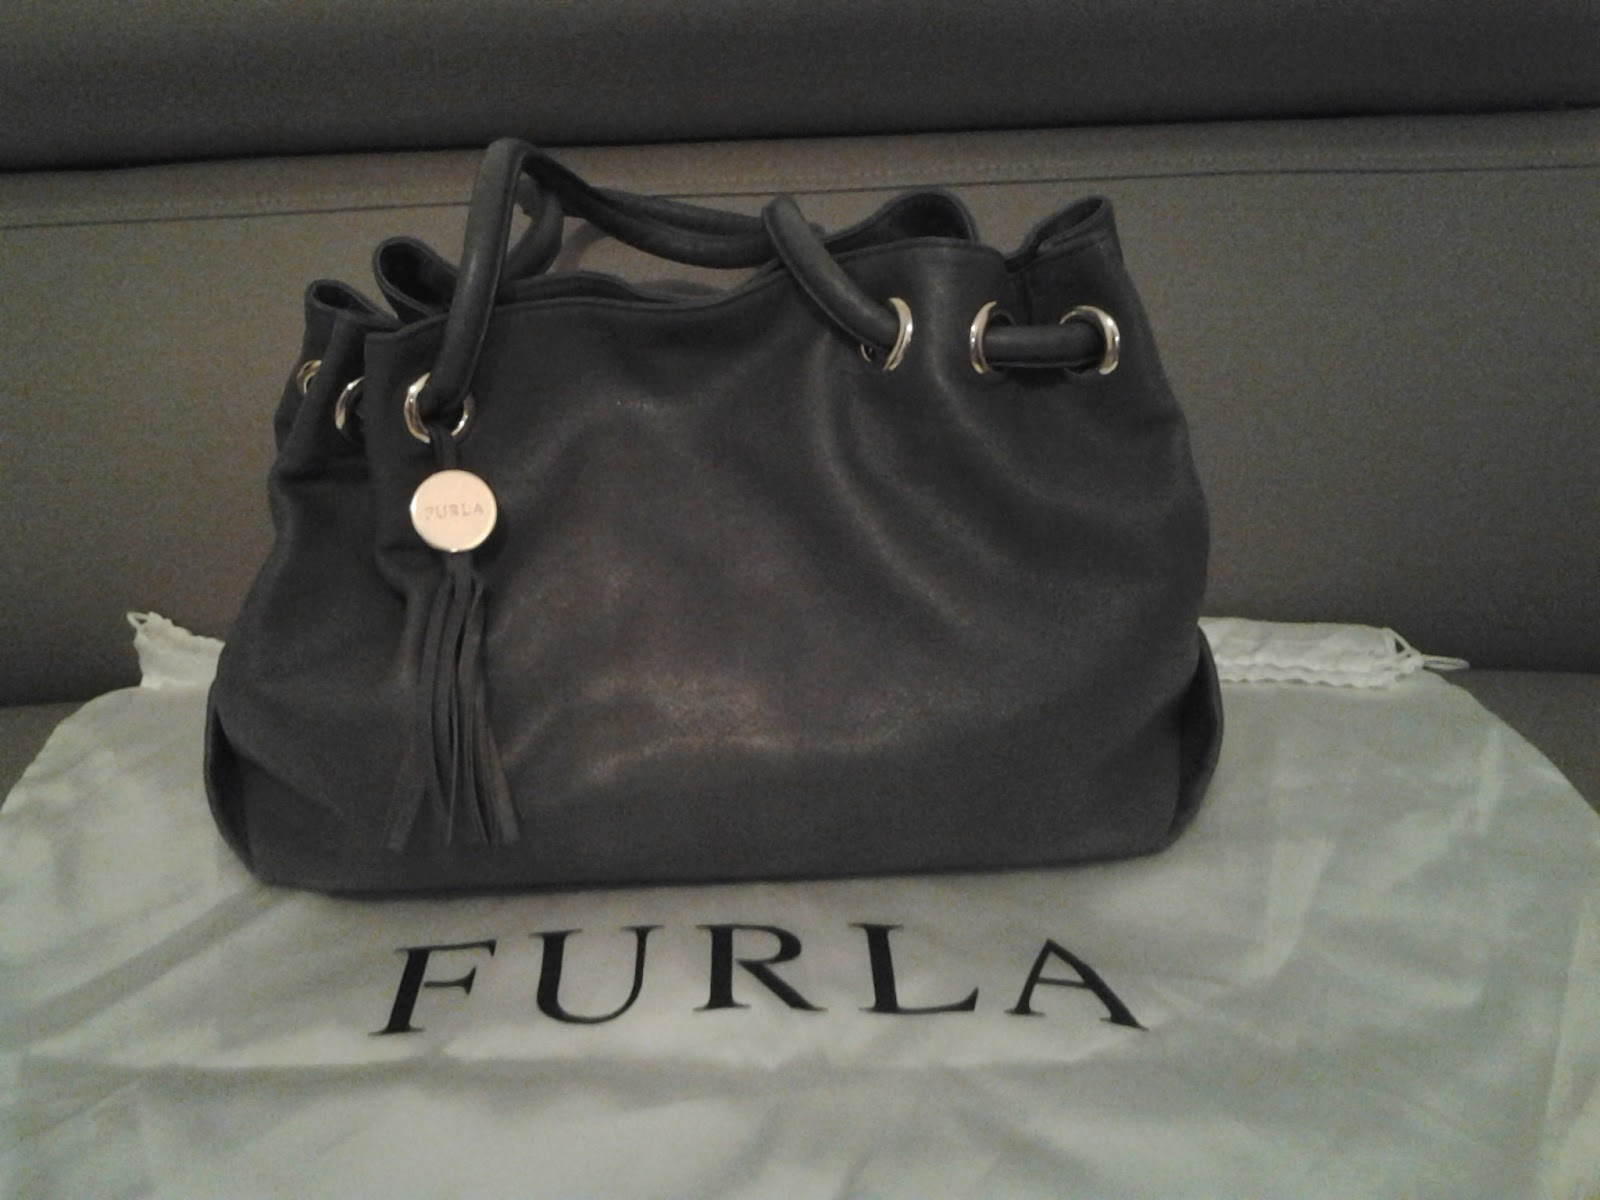 Sold For Preowned Furla Carmen Medium Per Bag Leather 1 2 Million From Original Price 5 8million